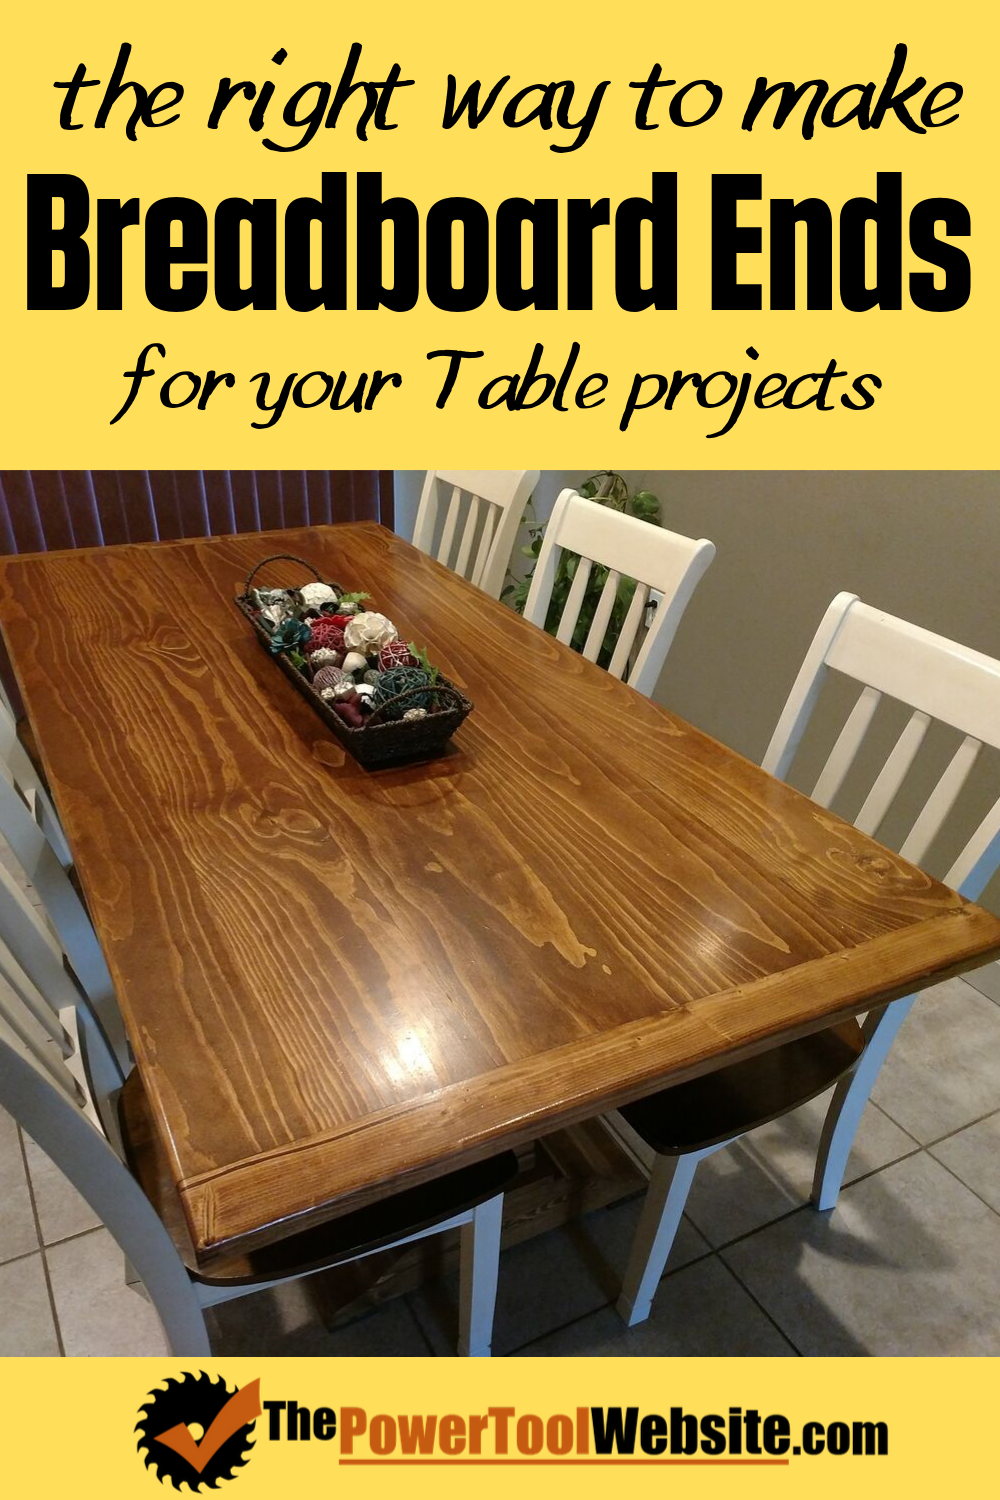 The Right Way To Do Breadboard Ends For Your Table Projects